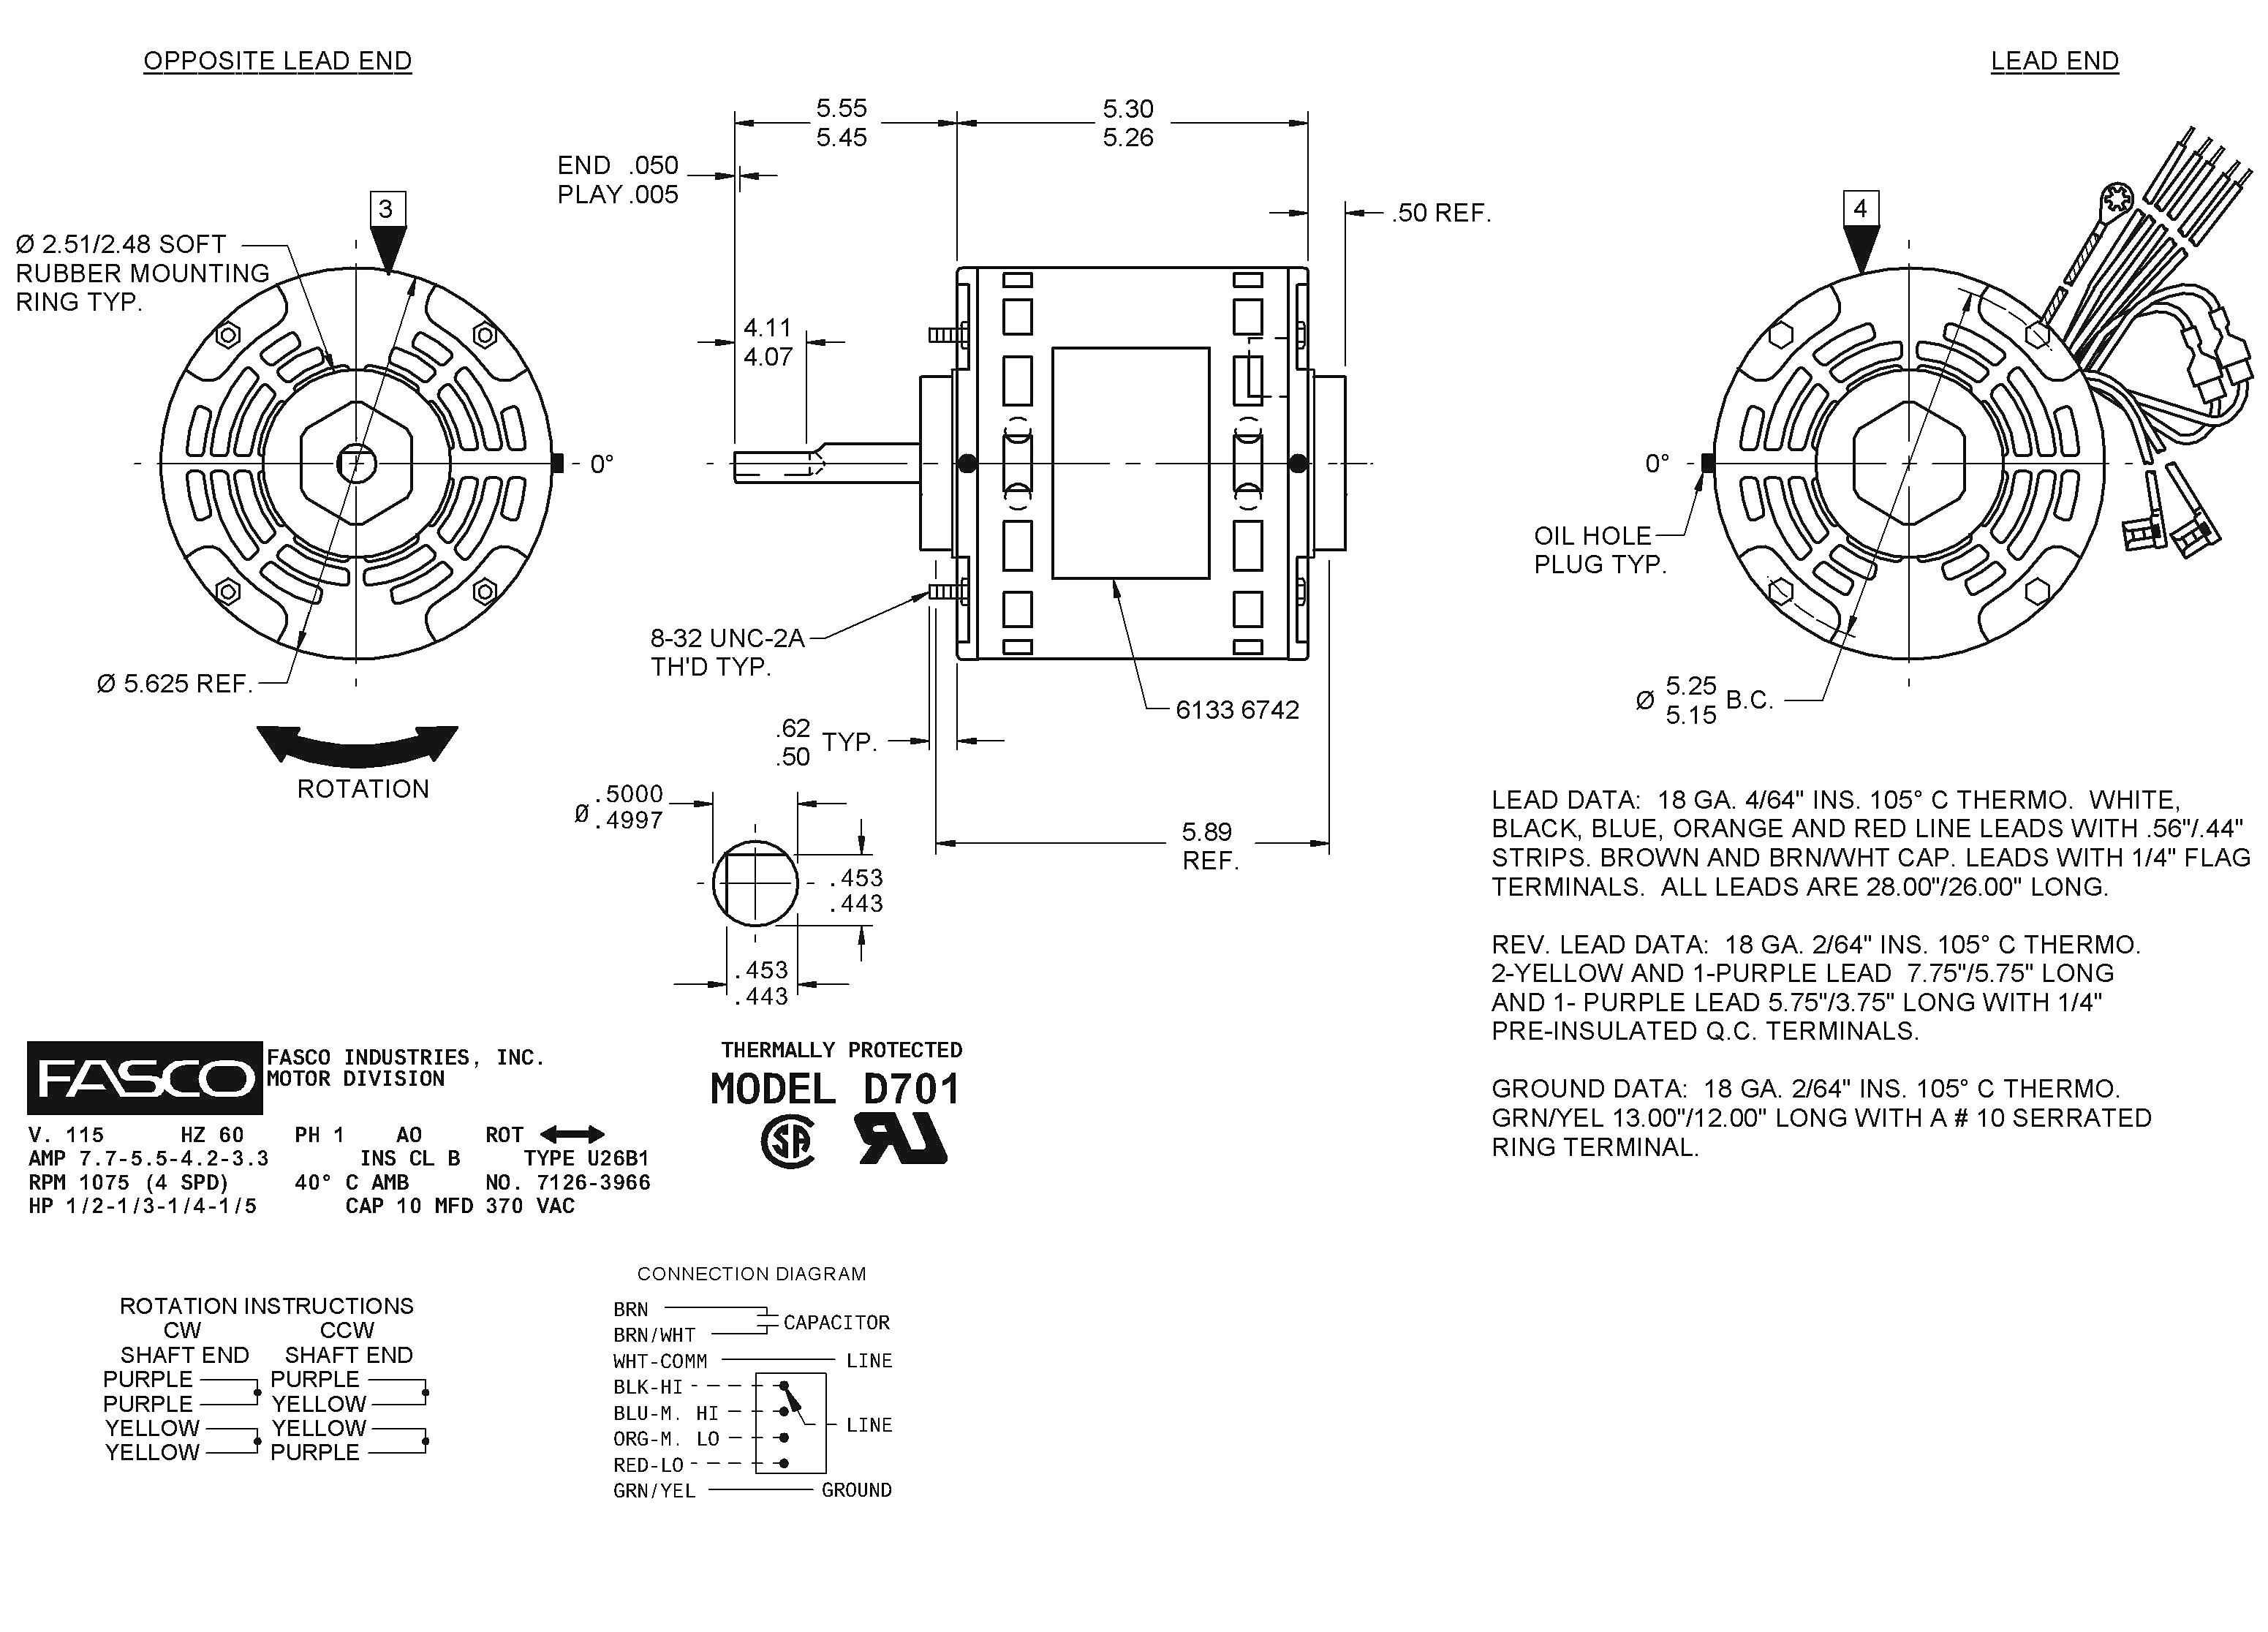 X13 Motor Schematic Trusted Wiring Diagrams 0 10vdc Ecm Diagram Emerson 3 Data U2022 Ac Condenser Fan